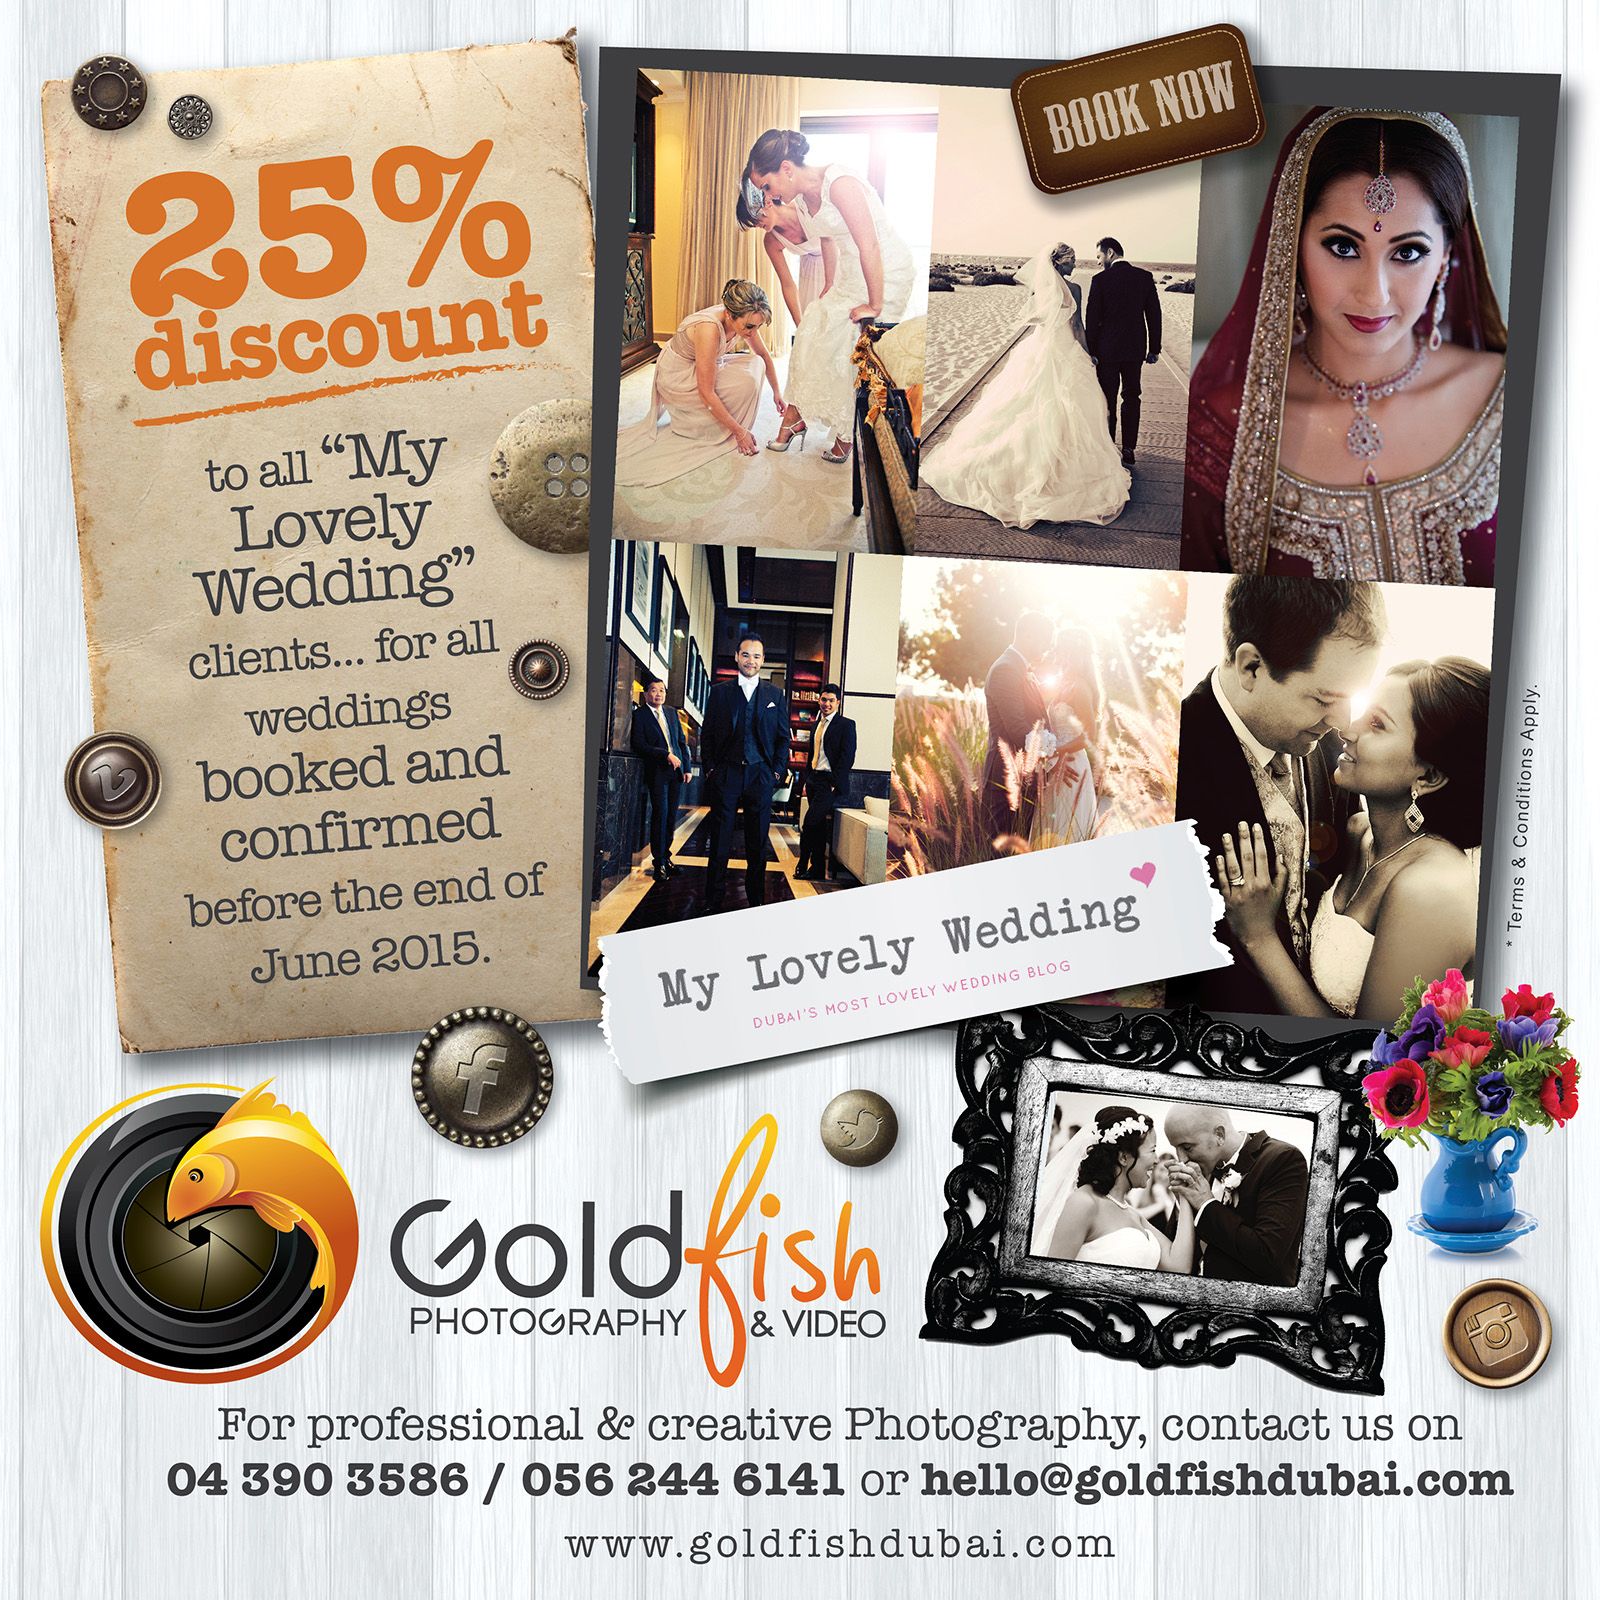 25% off wedding photography & video for all MLW readers before the end of June!